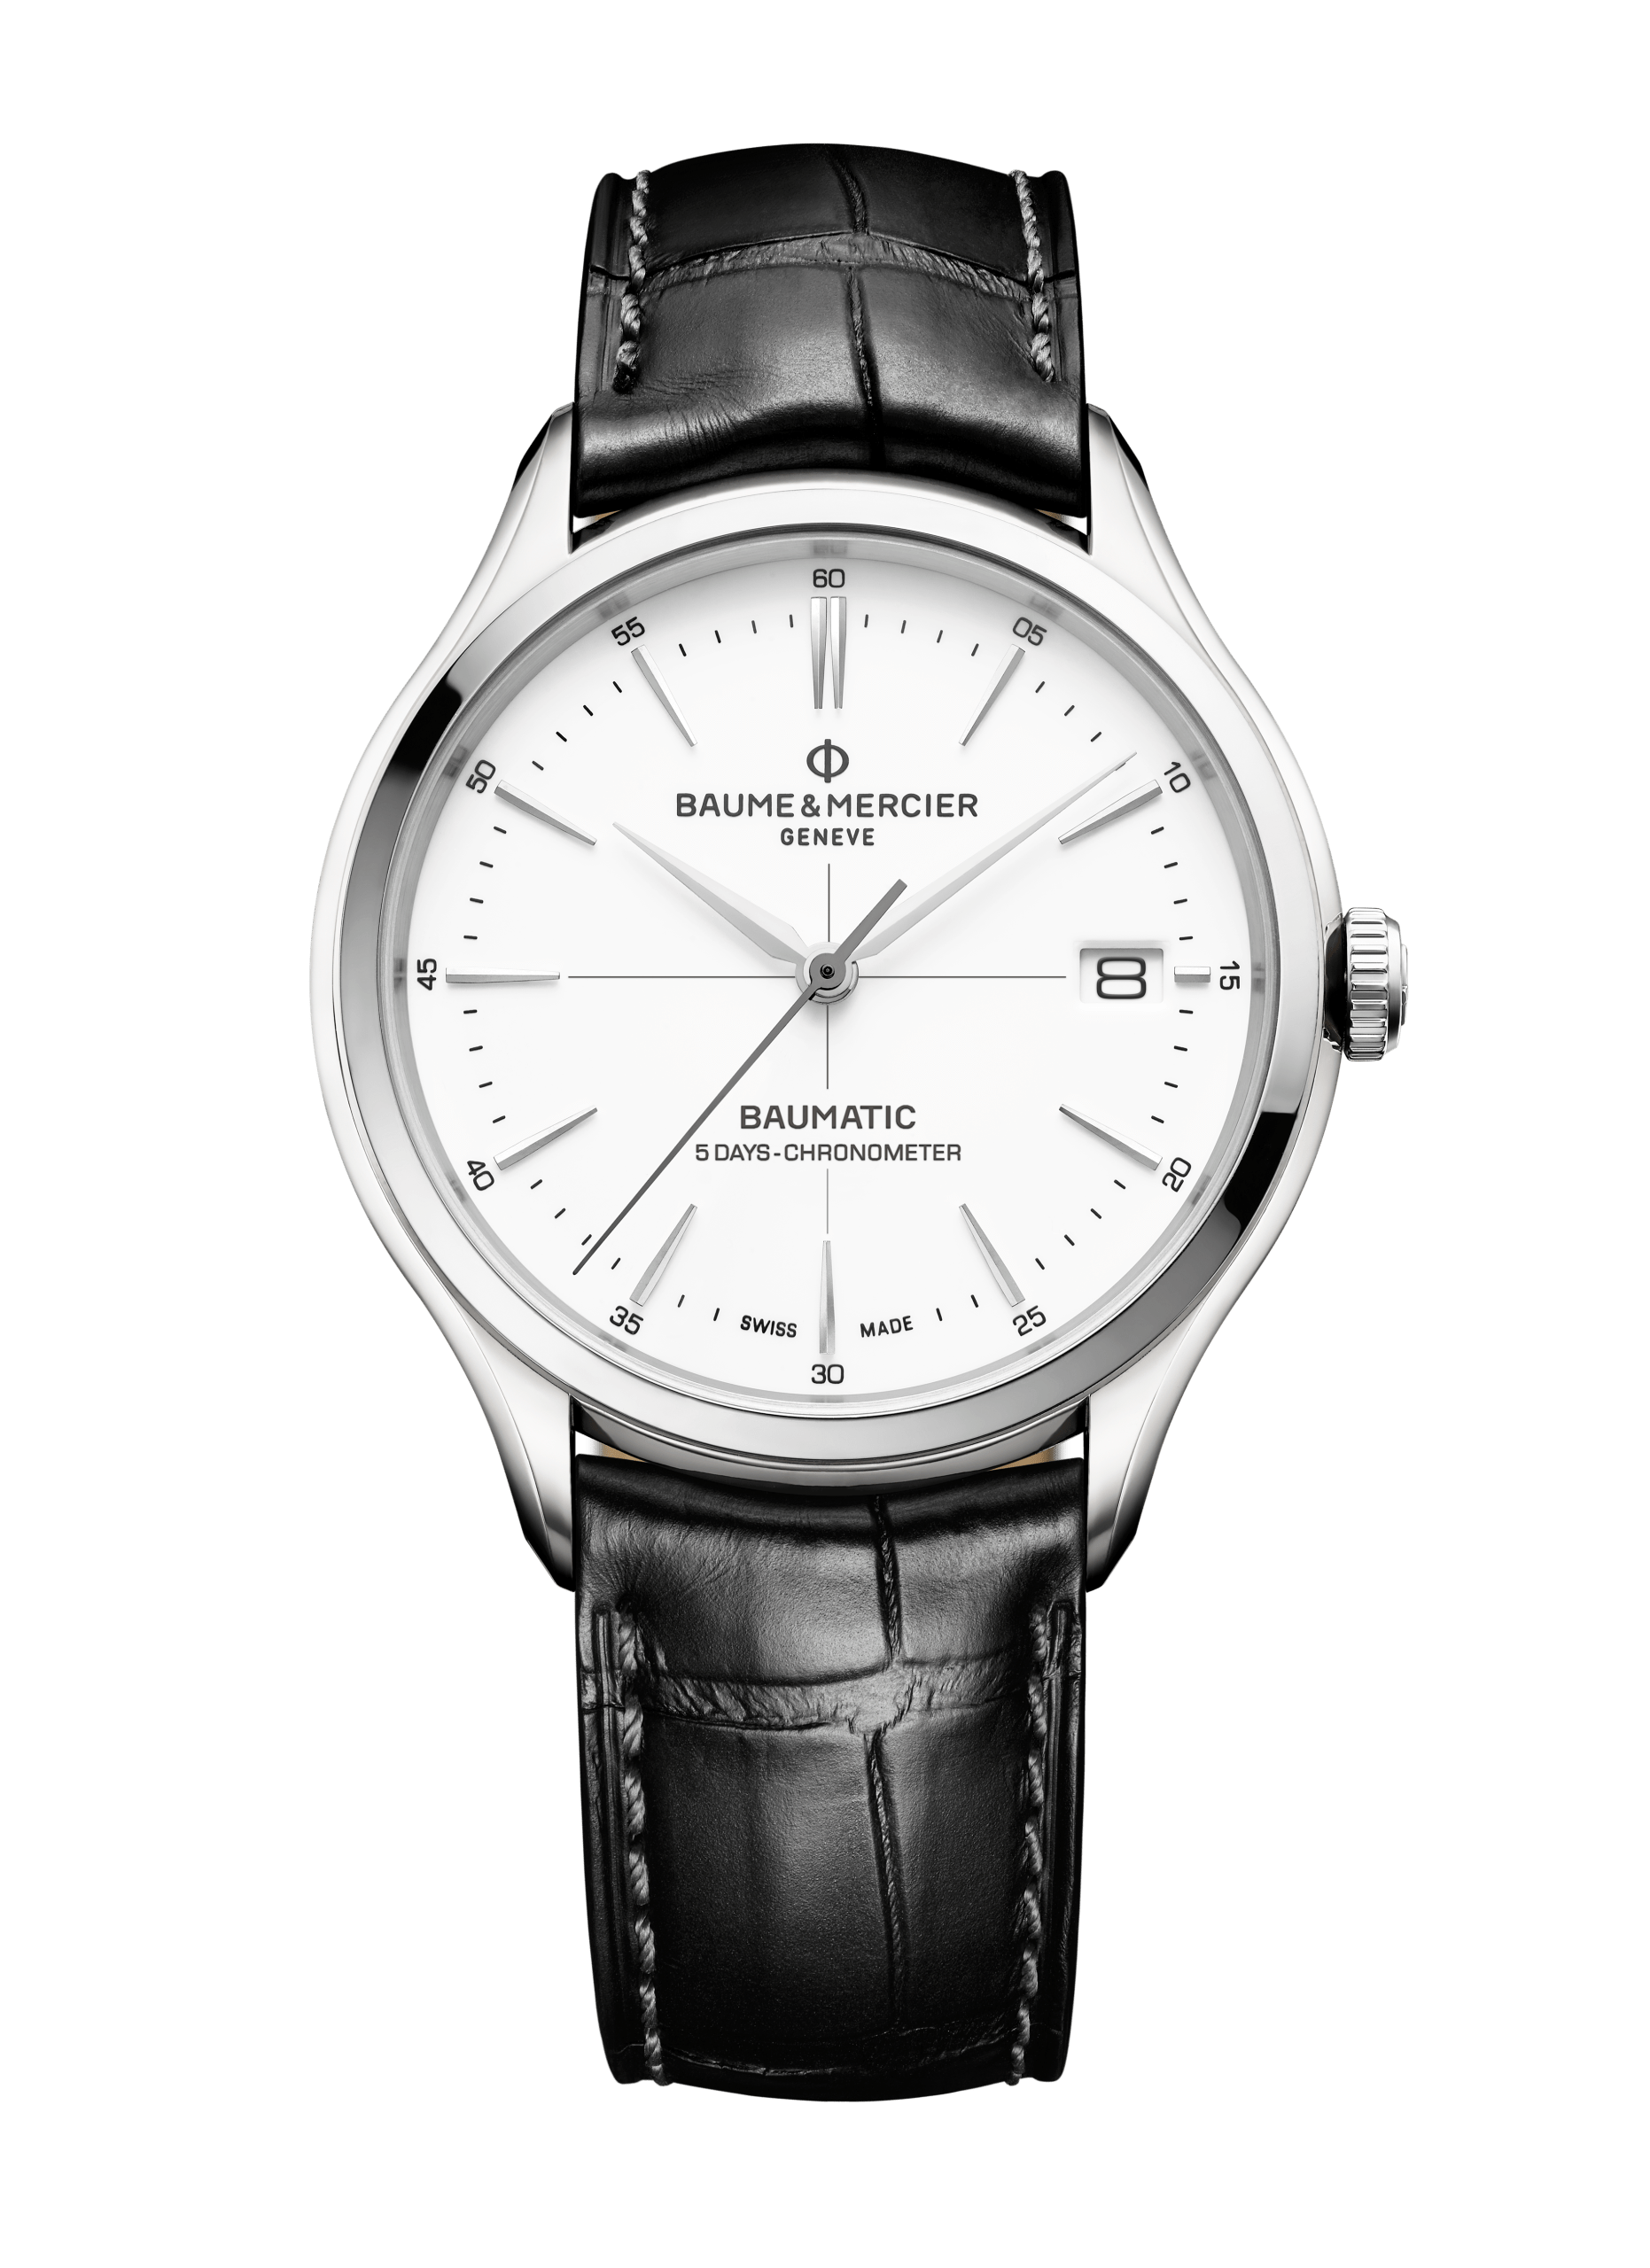 Baume-et-Mercier-Clifton-Baumatic_10436_SOLDAT_1626377